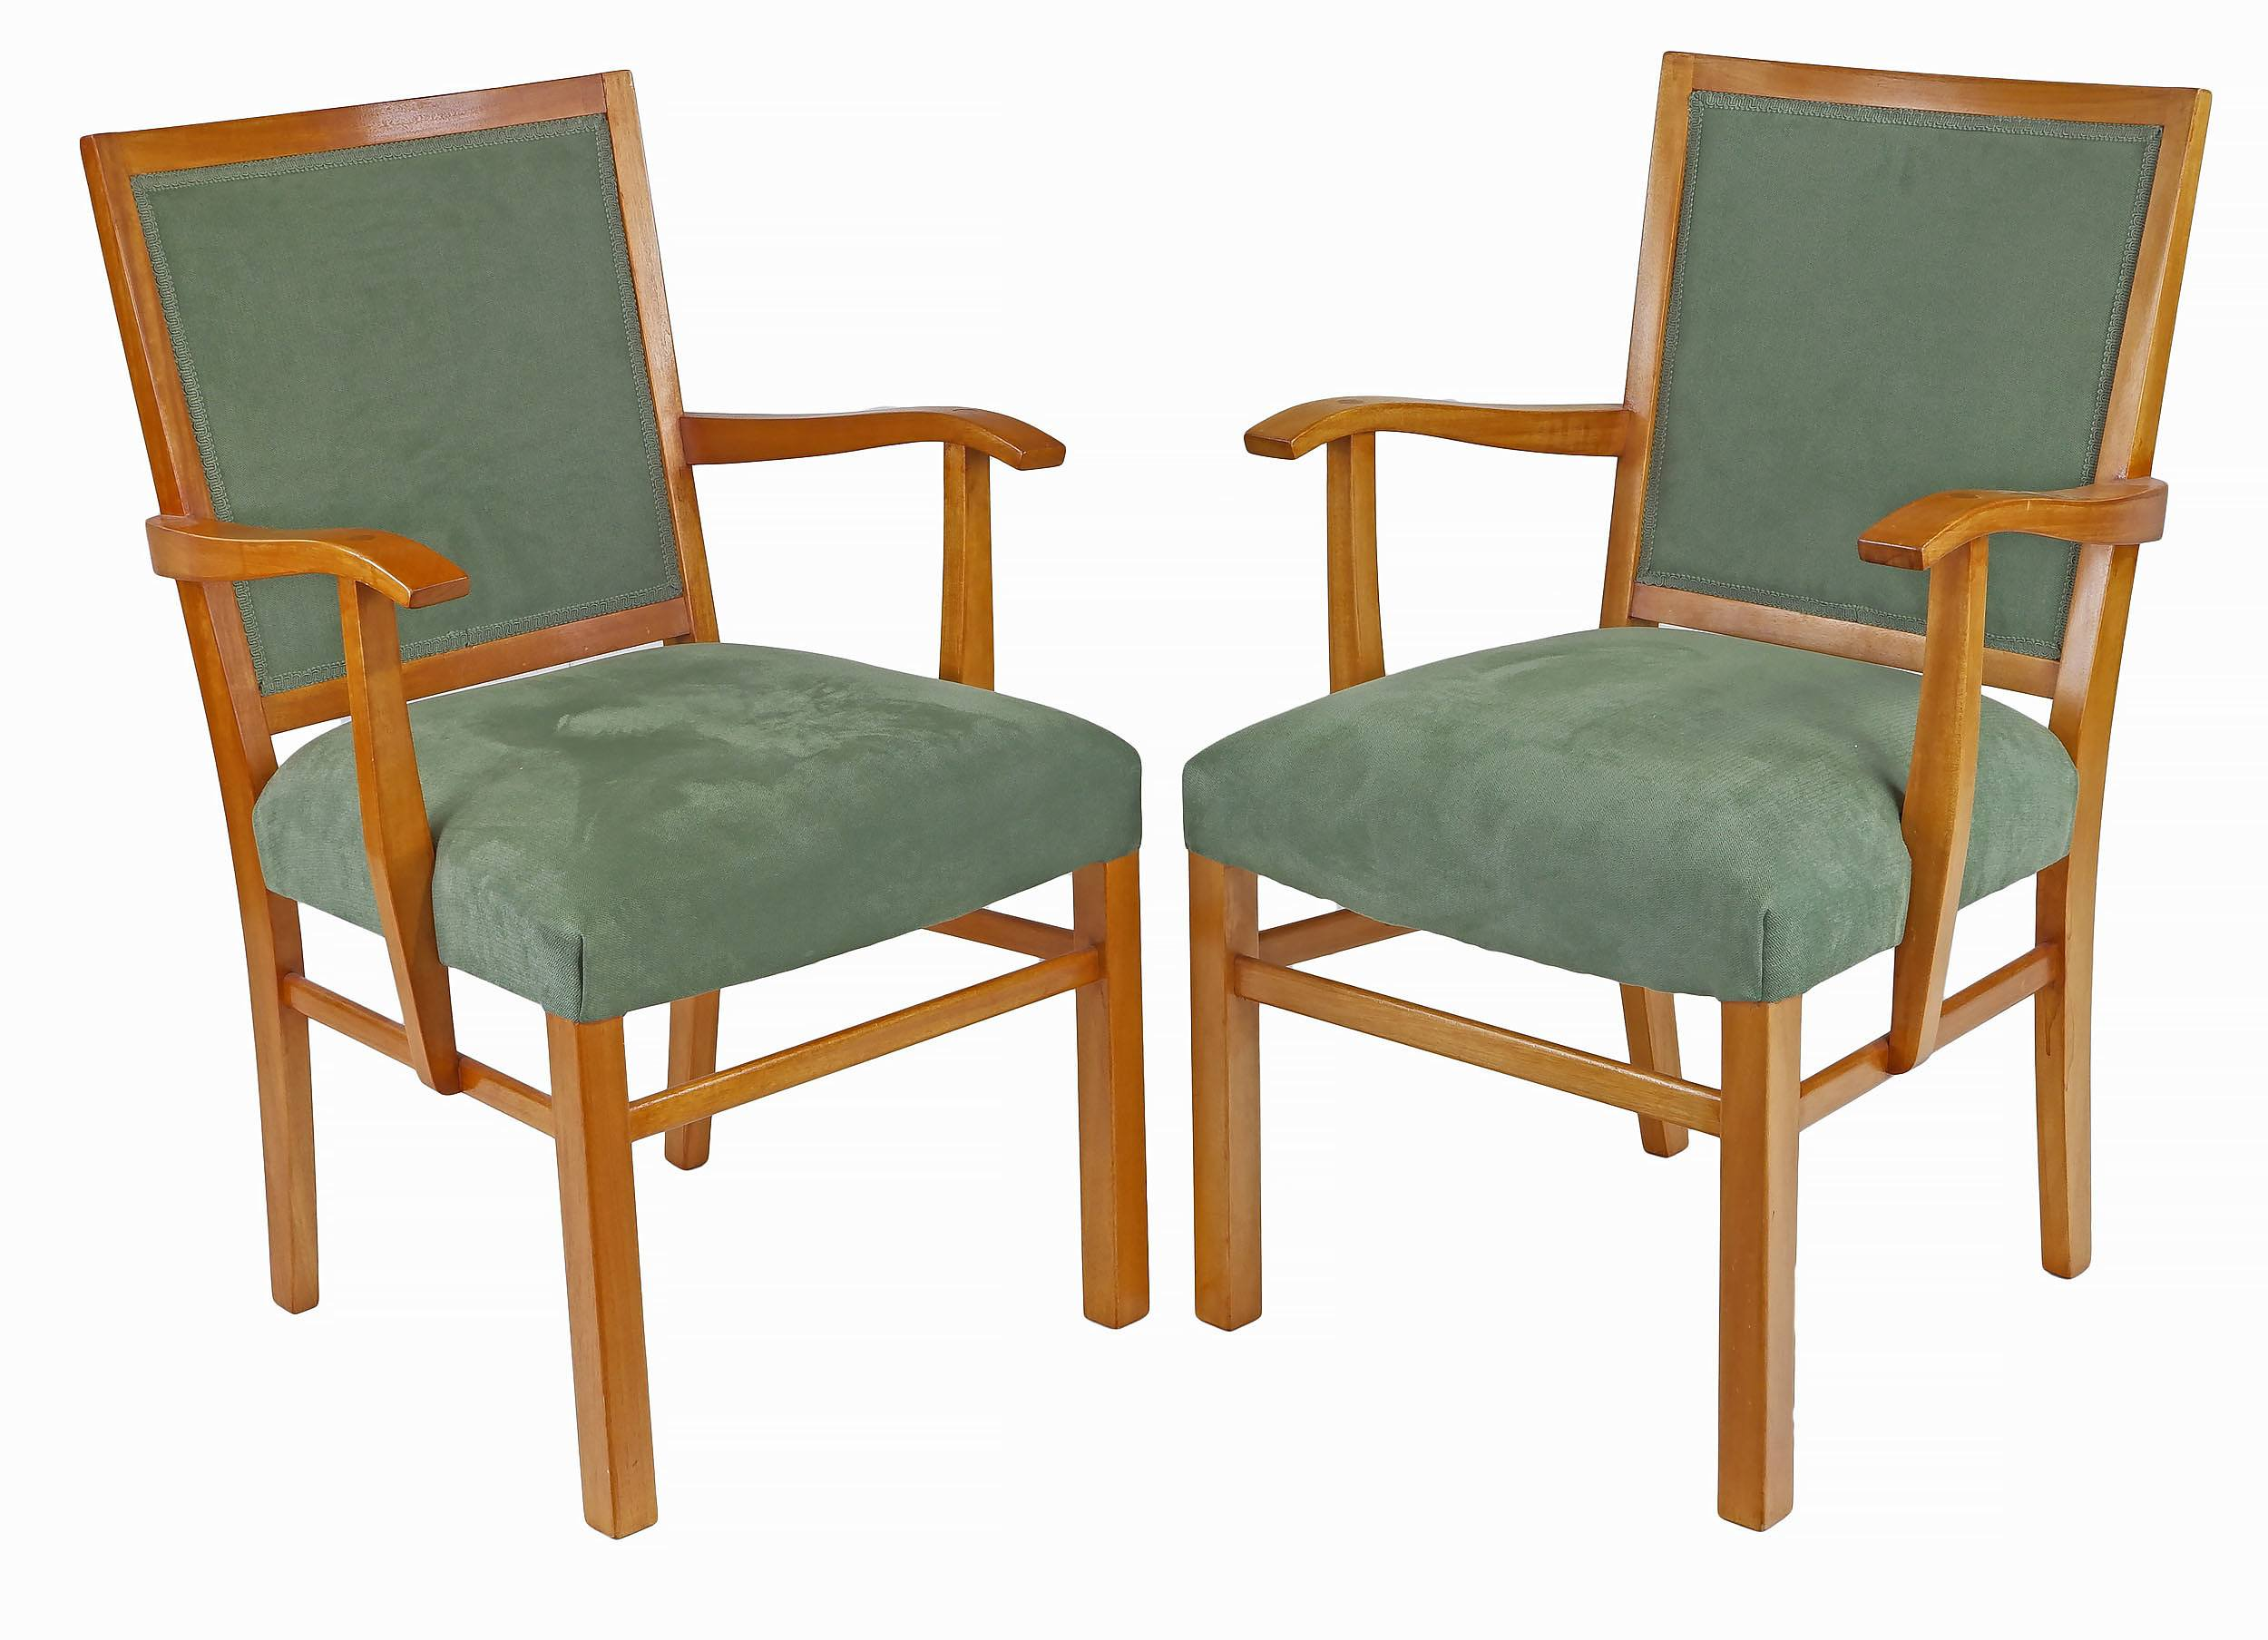 'Two Fred Ward Maple Armchairs'